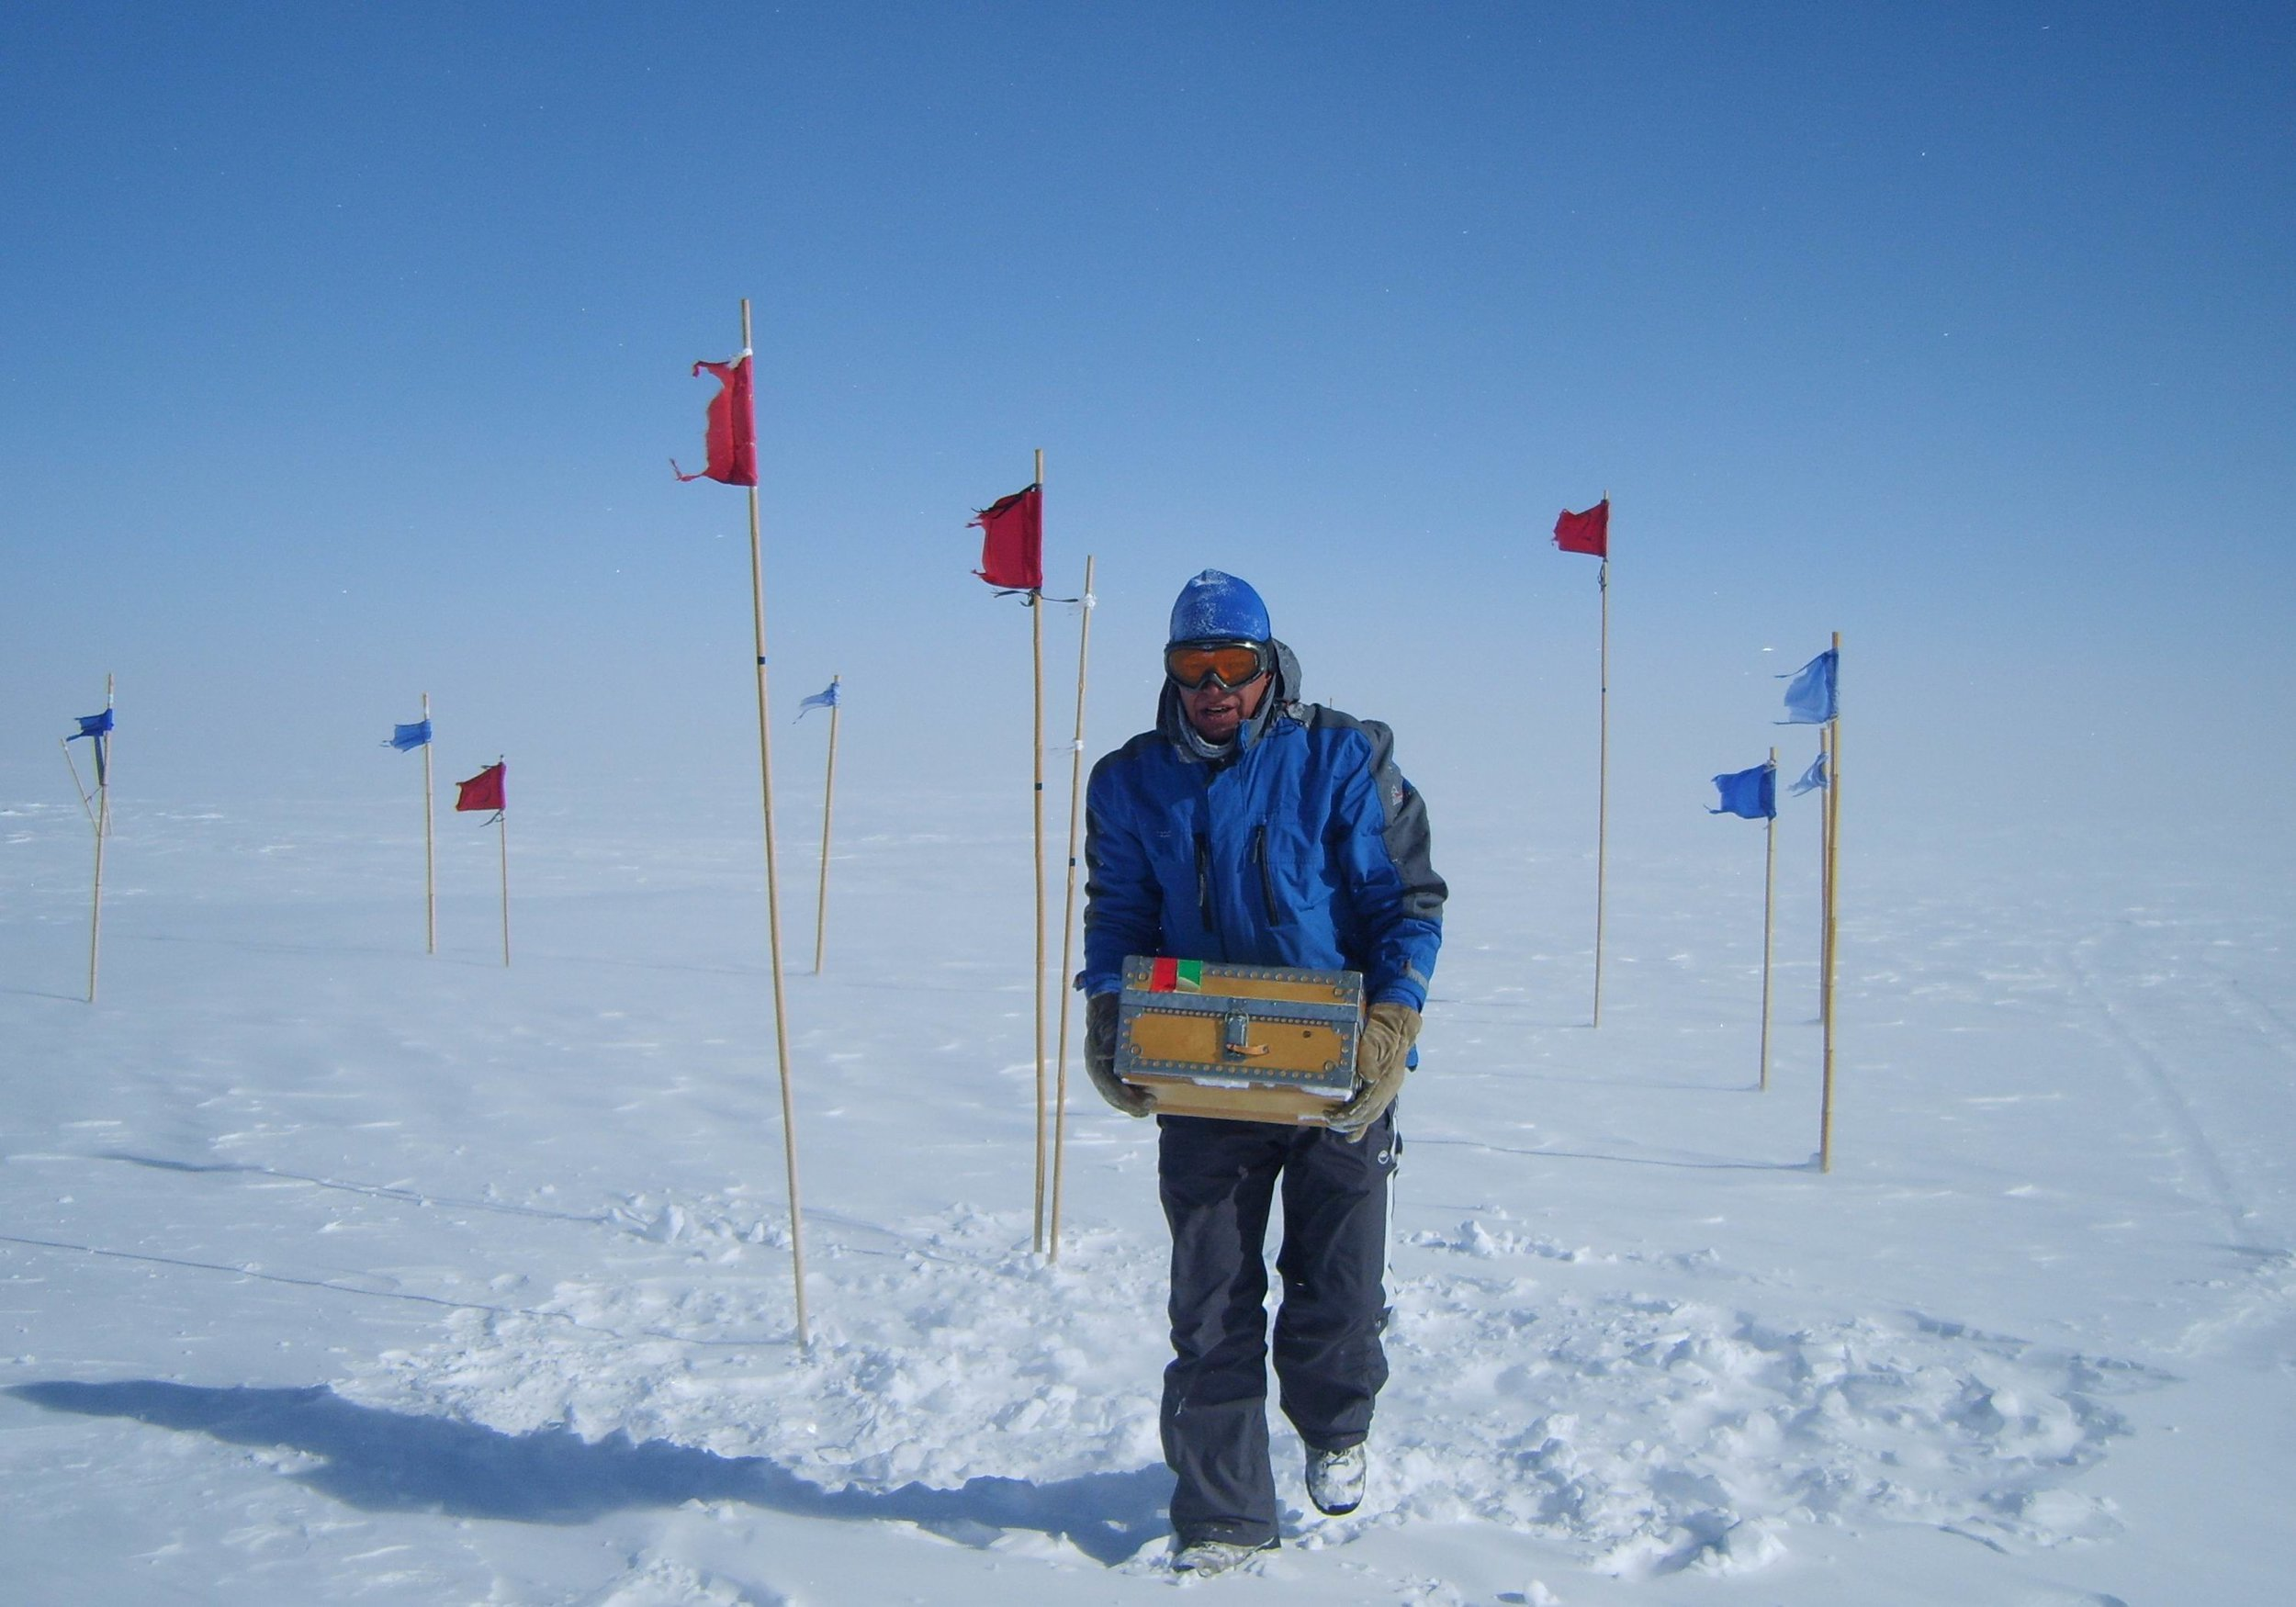 The Meijer team harvested shallow ice cores to about two meters depth from an isotopically enriched site (seen here within the flag border) near Summit Station. They also conducted maintenance on dataloggers at the site.